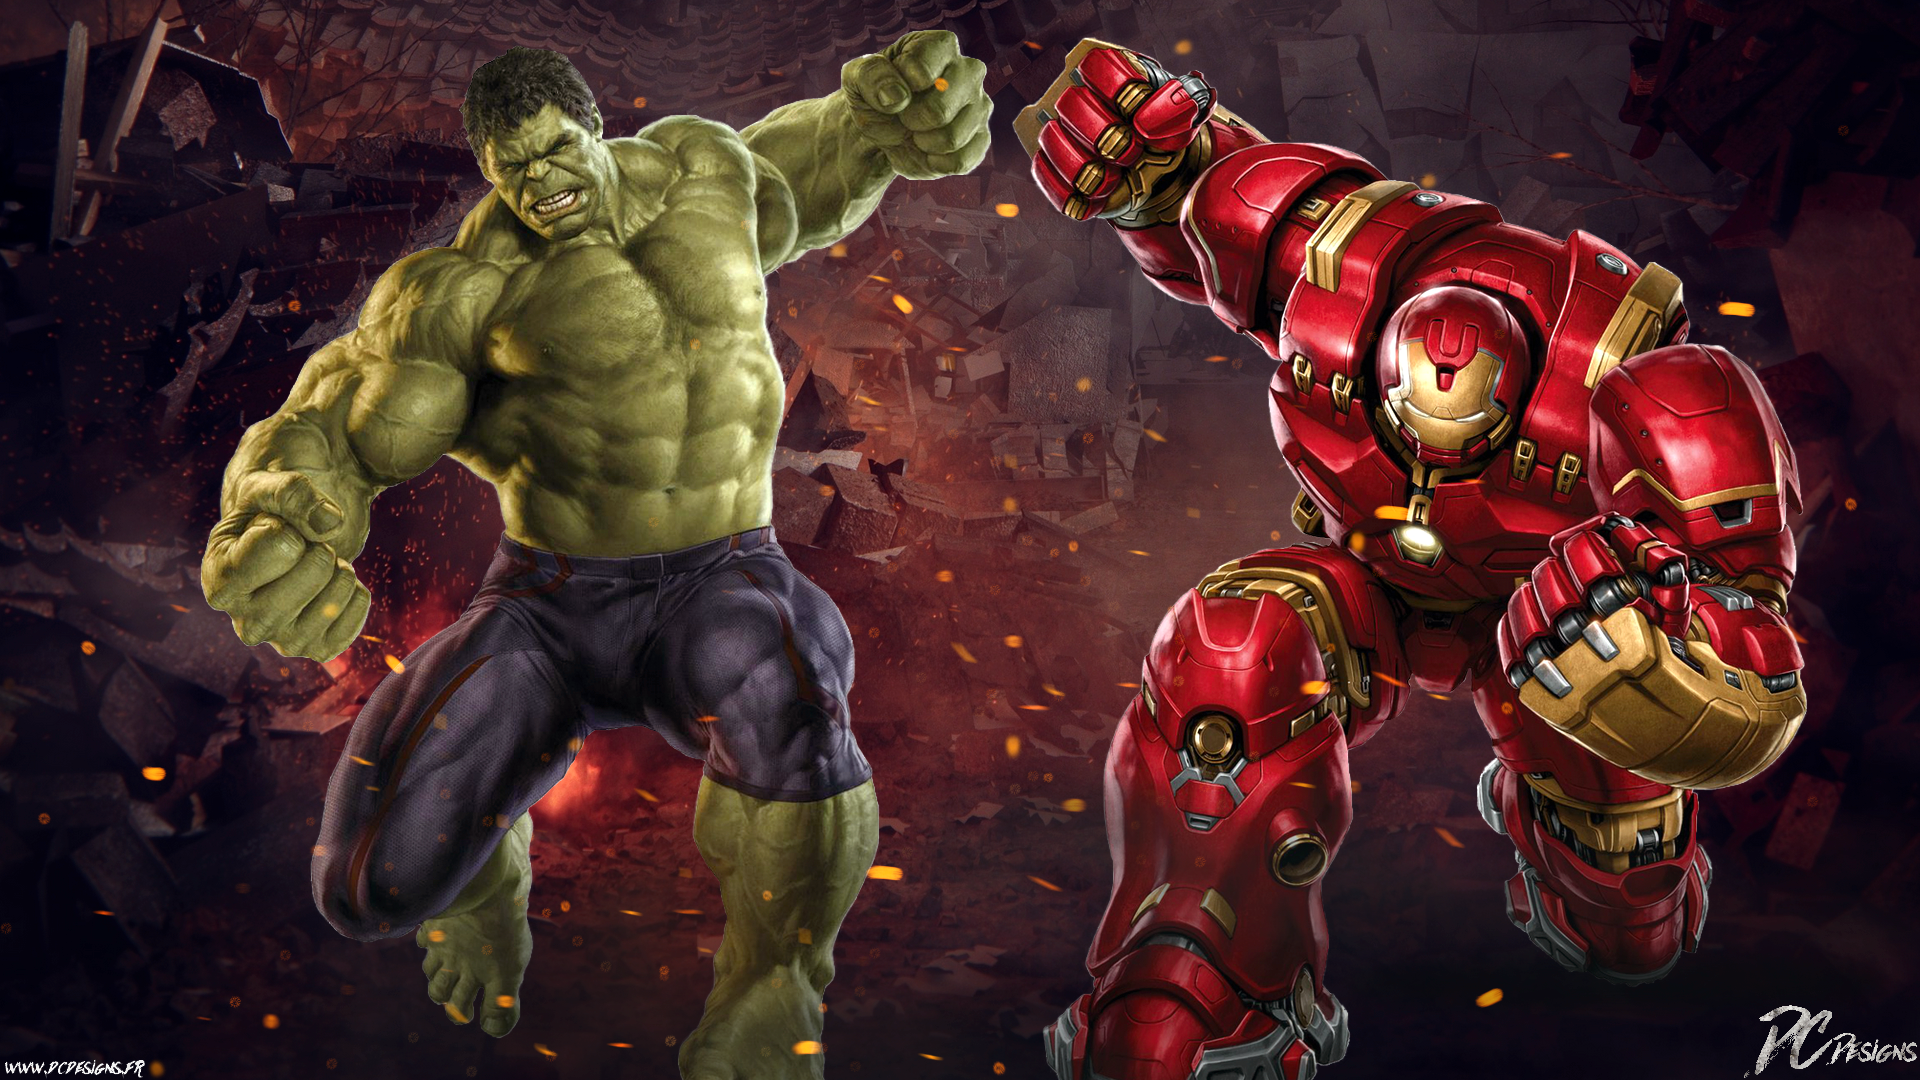 Hulk Vs Hulkbuster HD Wallpaper Background Image 1920x1080 1920x1080